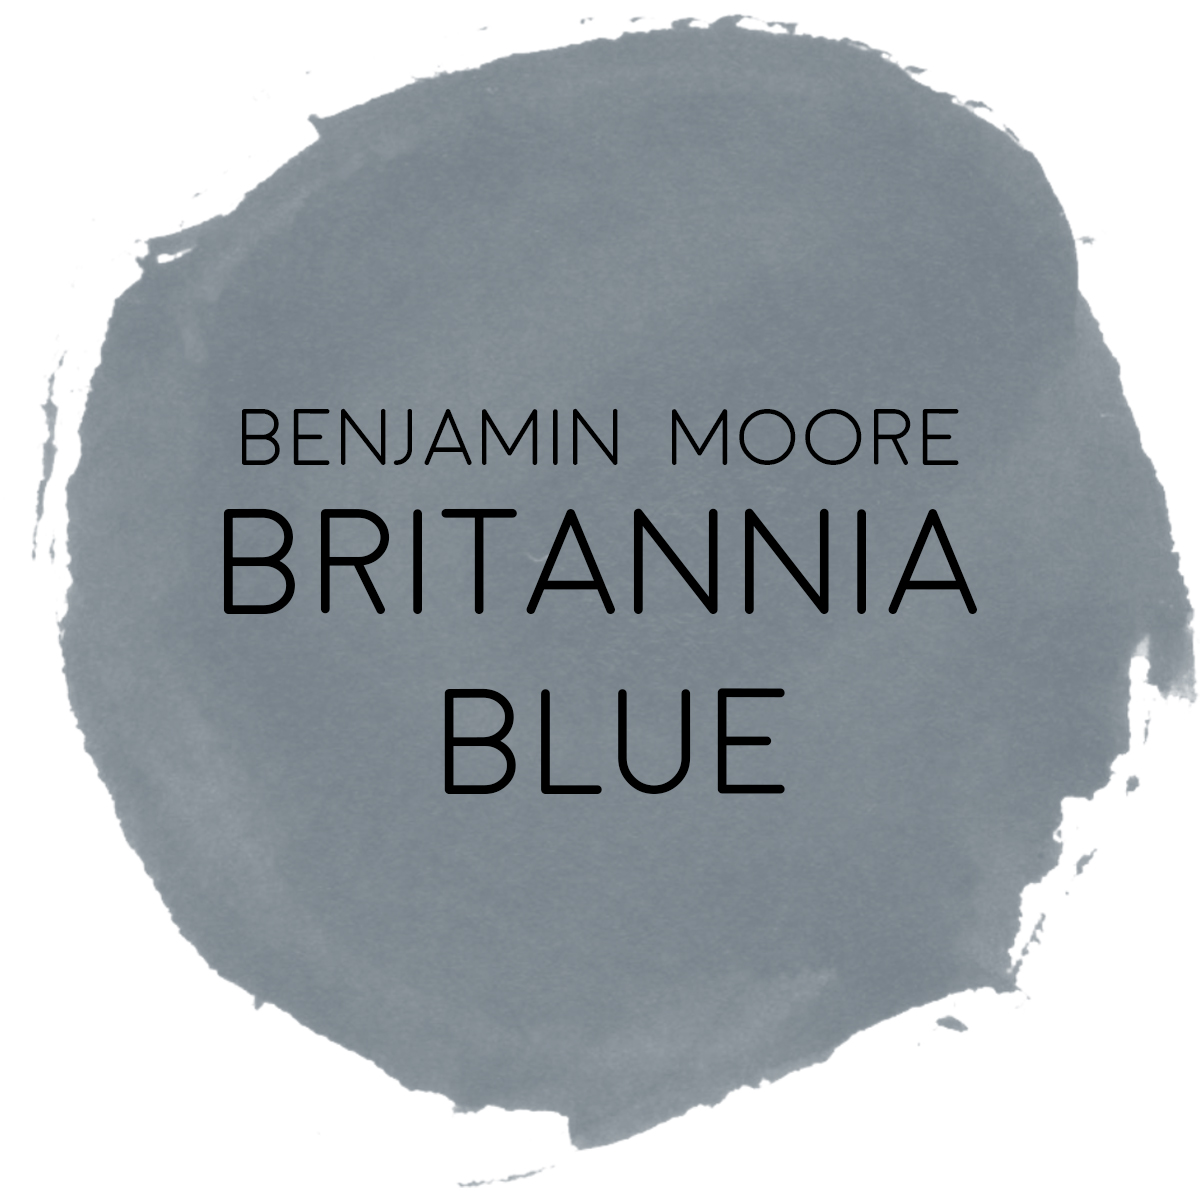 blackband_design_bm_britannia_blue